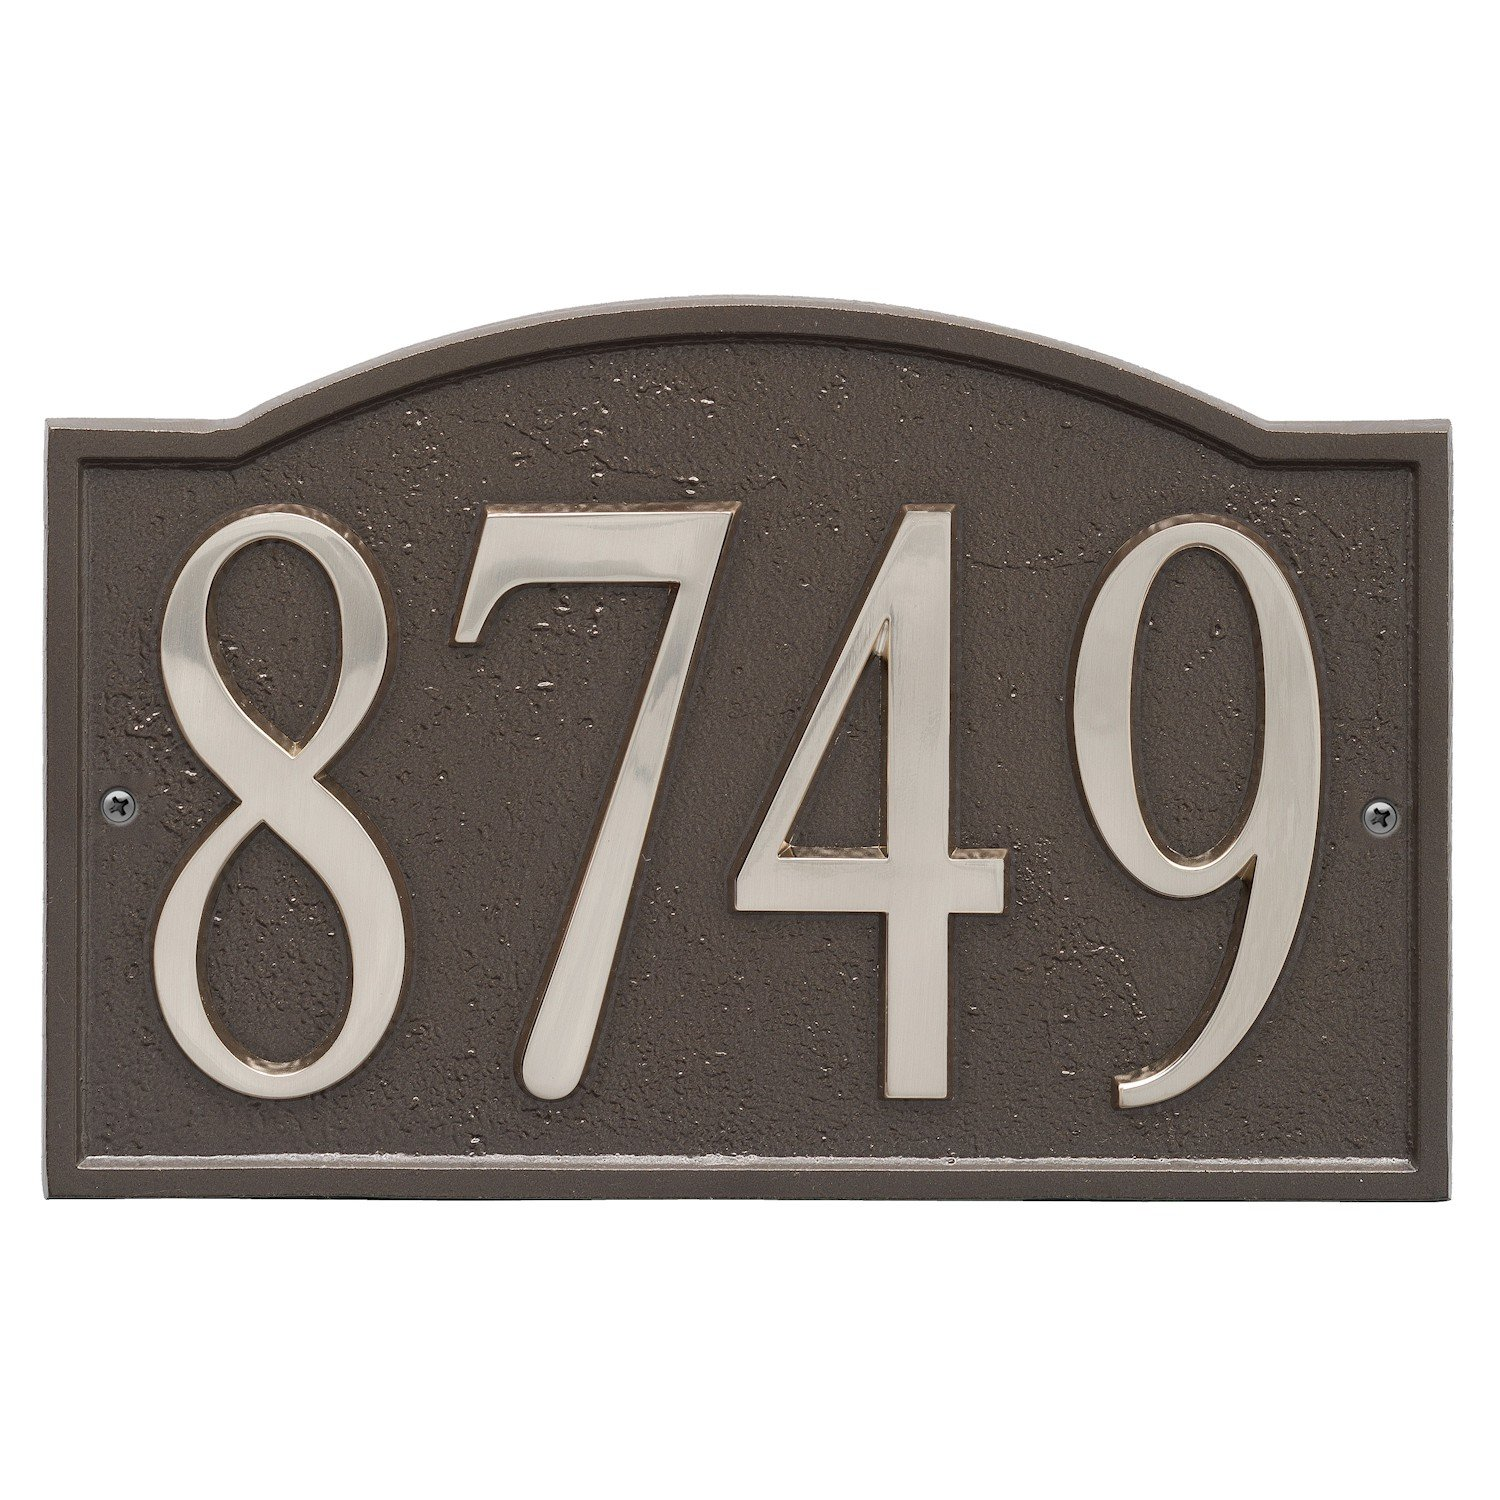 ART & ARTIFACT by Whitehall Personalized Cast Metal Address Plaque - 11'' x 7.25'' Custom House Number Sign - Arched Rectangle with DIY Self-Adhesive Zinc Numerals - Bronze/Silver